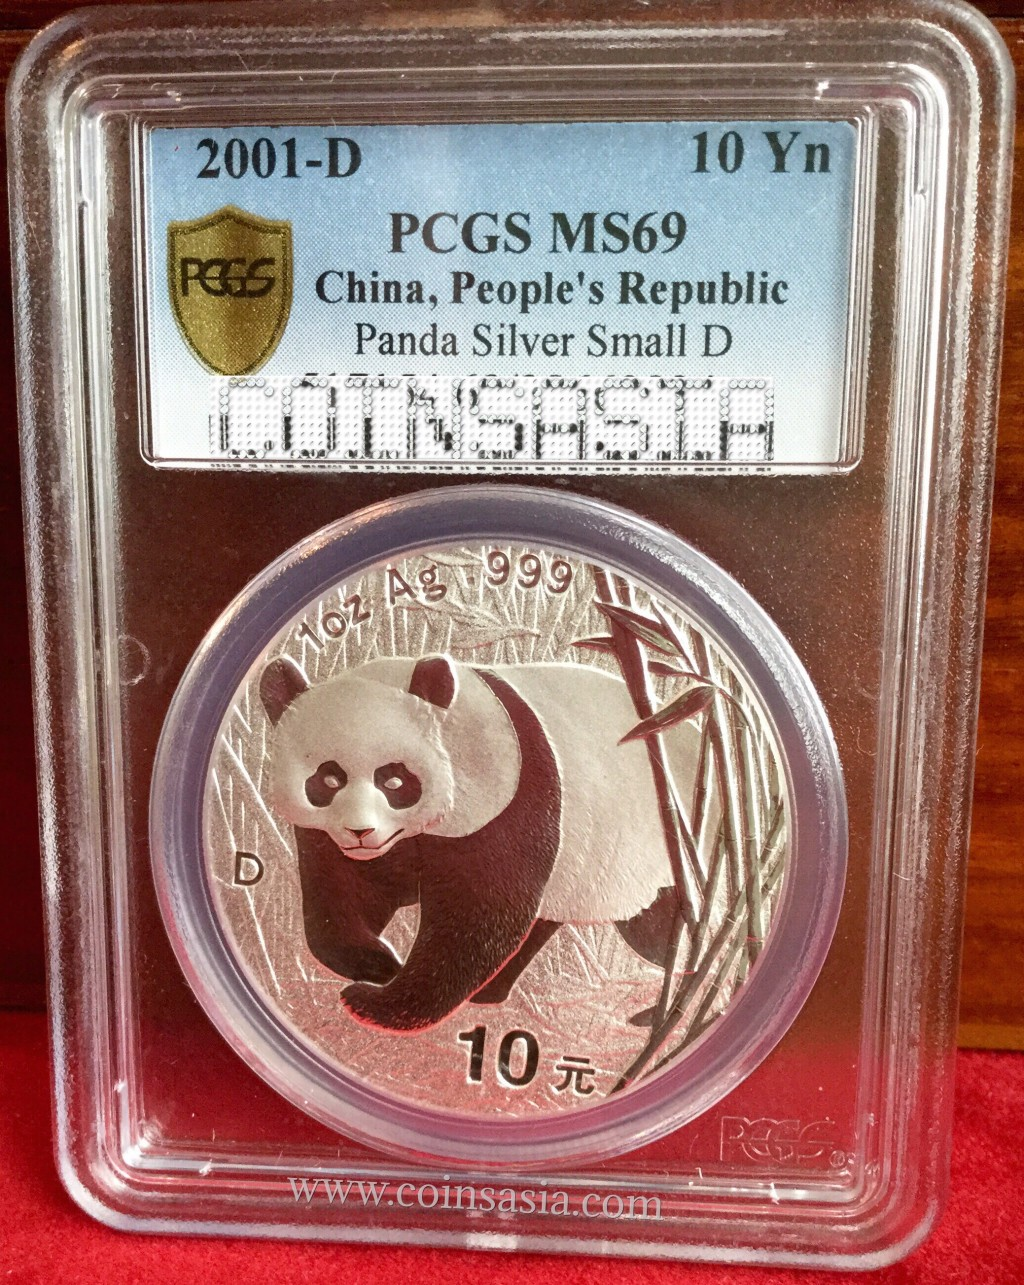 2011 10 Yn China .999 Fine Silver Panda PCGS MS-69 People/'s Republic 1 oz